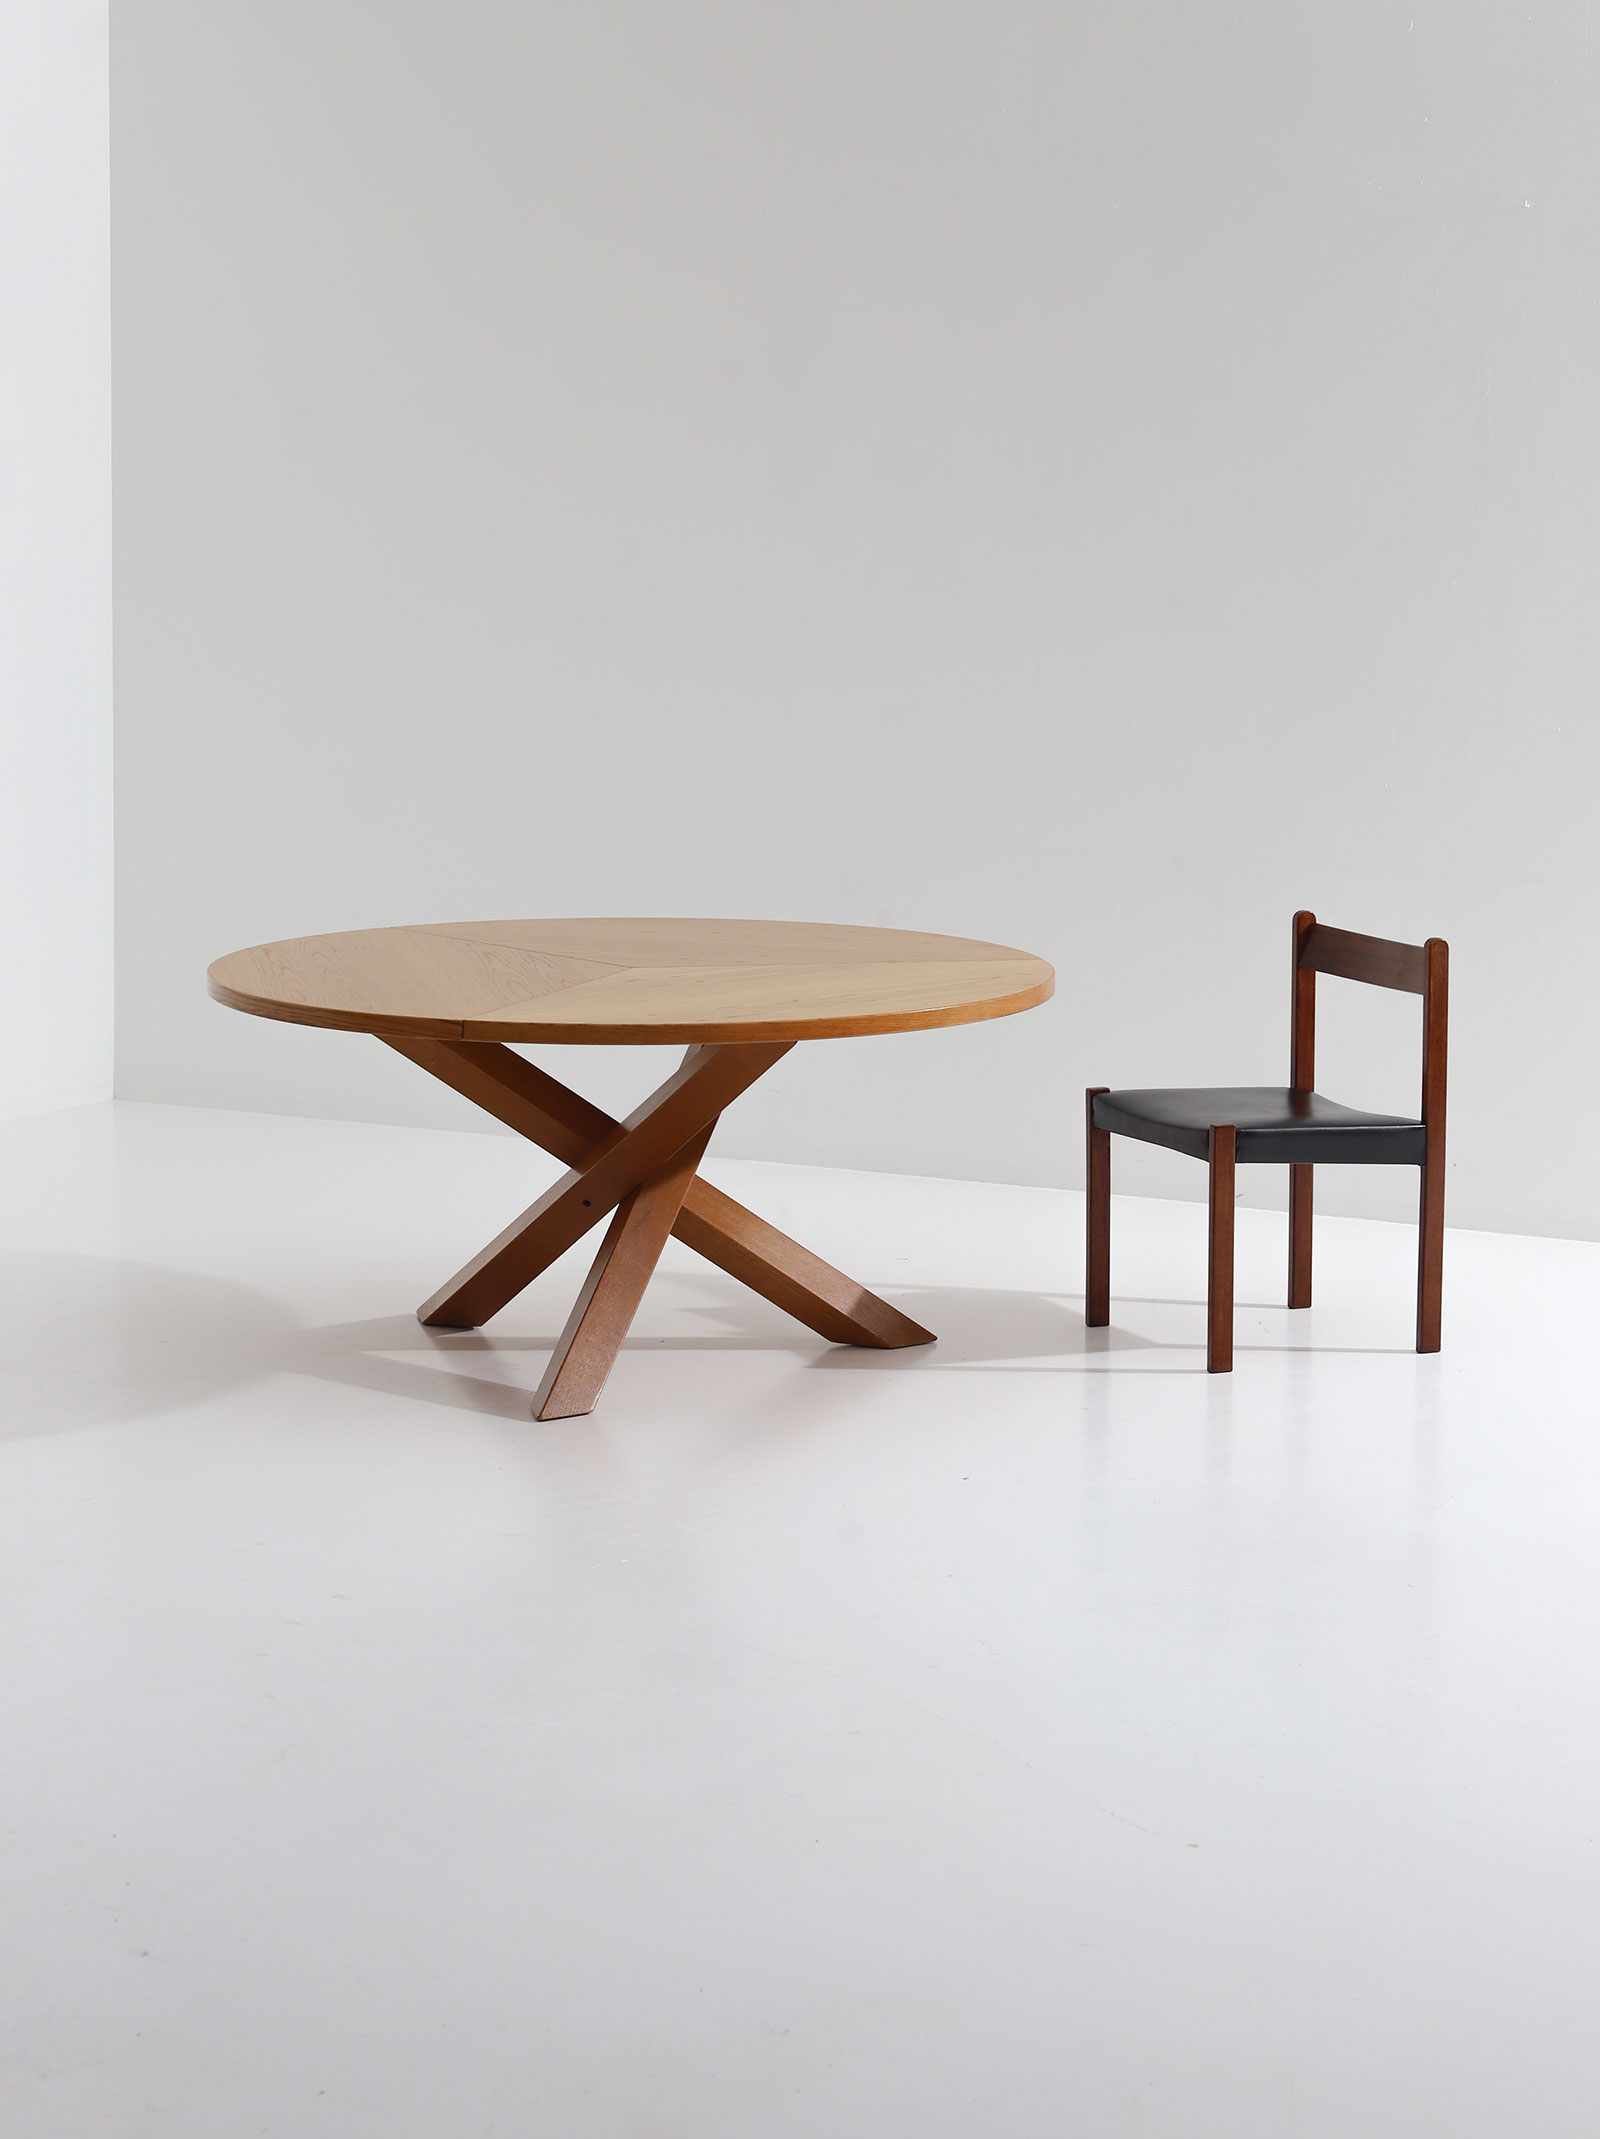 Gerard Geytenbeek Dining Table for AZS The Netherlandsimage 1